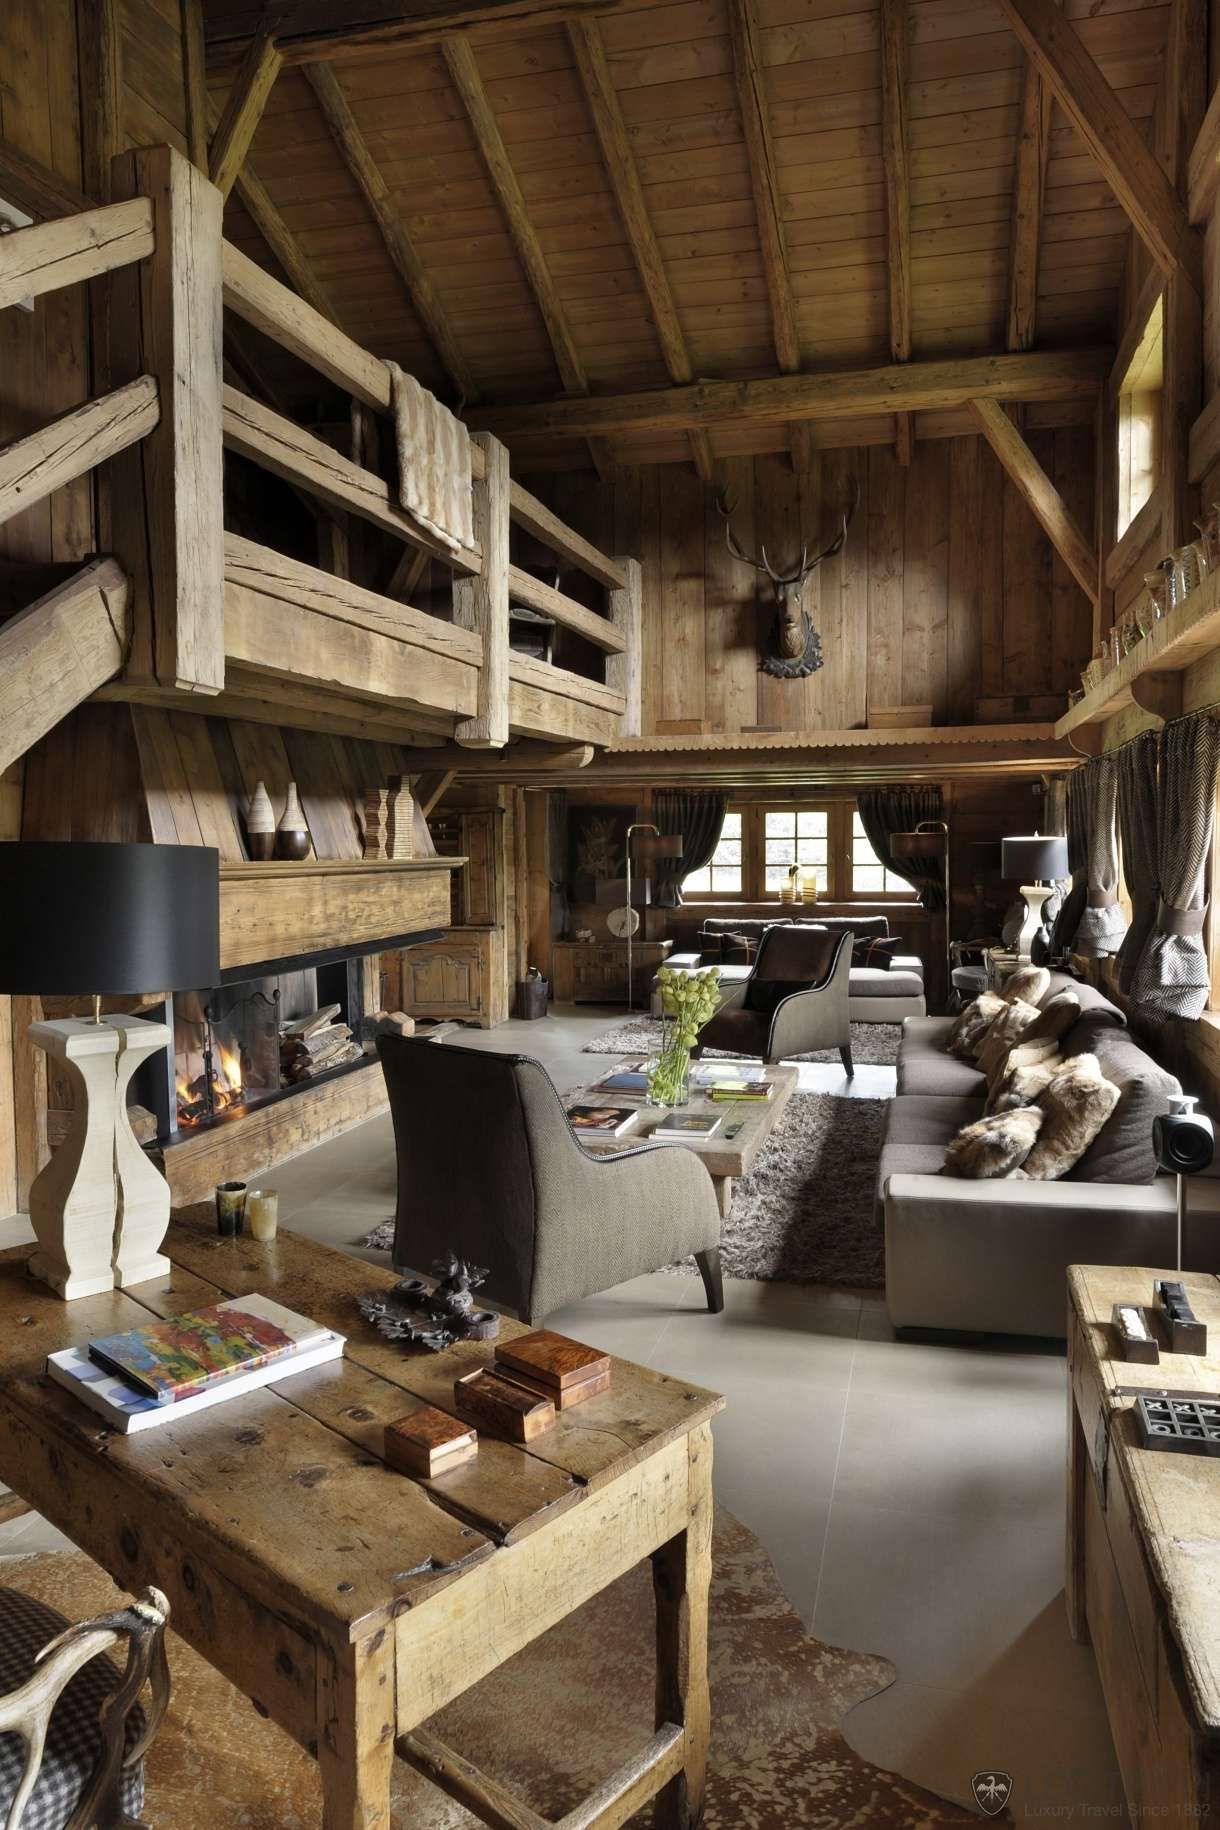 Cuisine Chalet Rustique Nouveau Collection Lovely Grey Luxury Ski Chalet for Rent Megeve Fermes De Marie 22